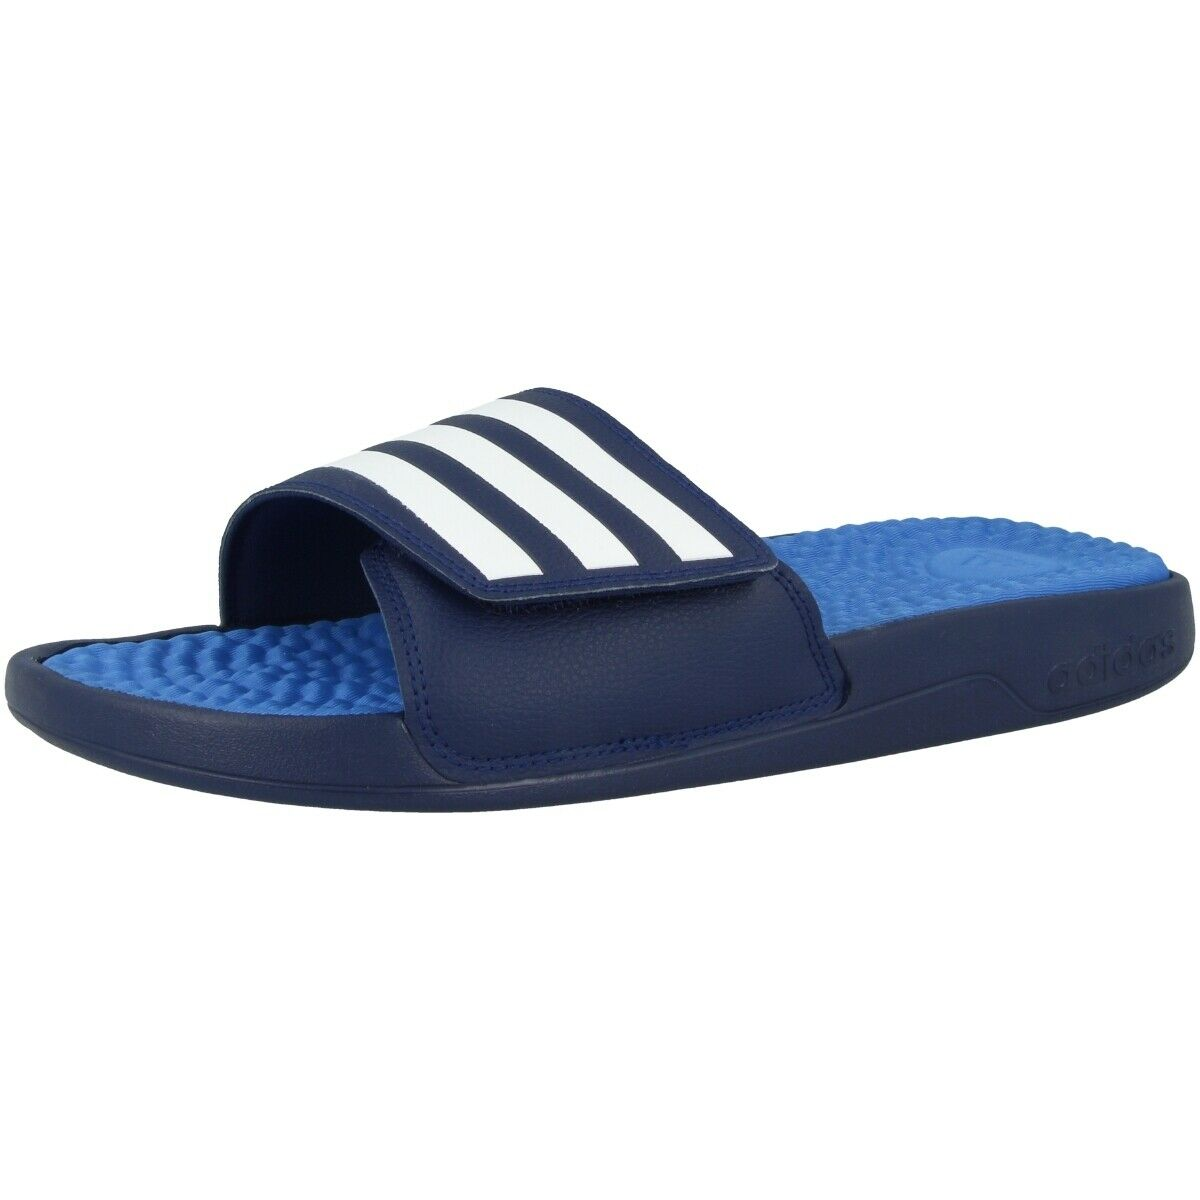 Adidas Adissage Tnd Pool shoes Slippers Sandals shoes bluee White